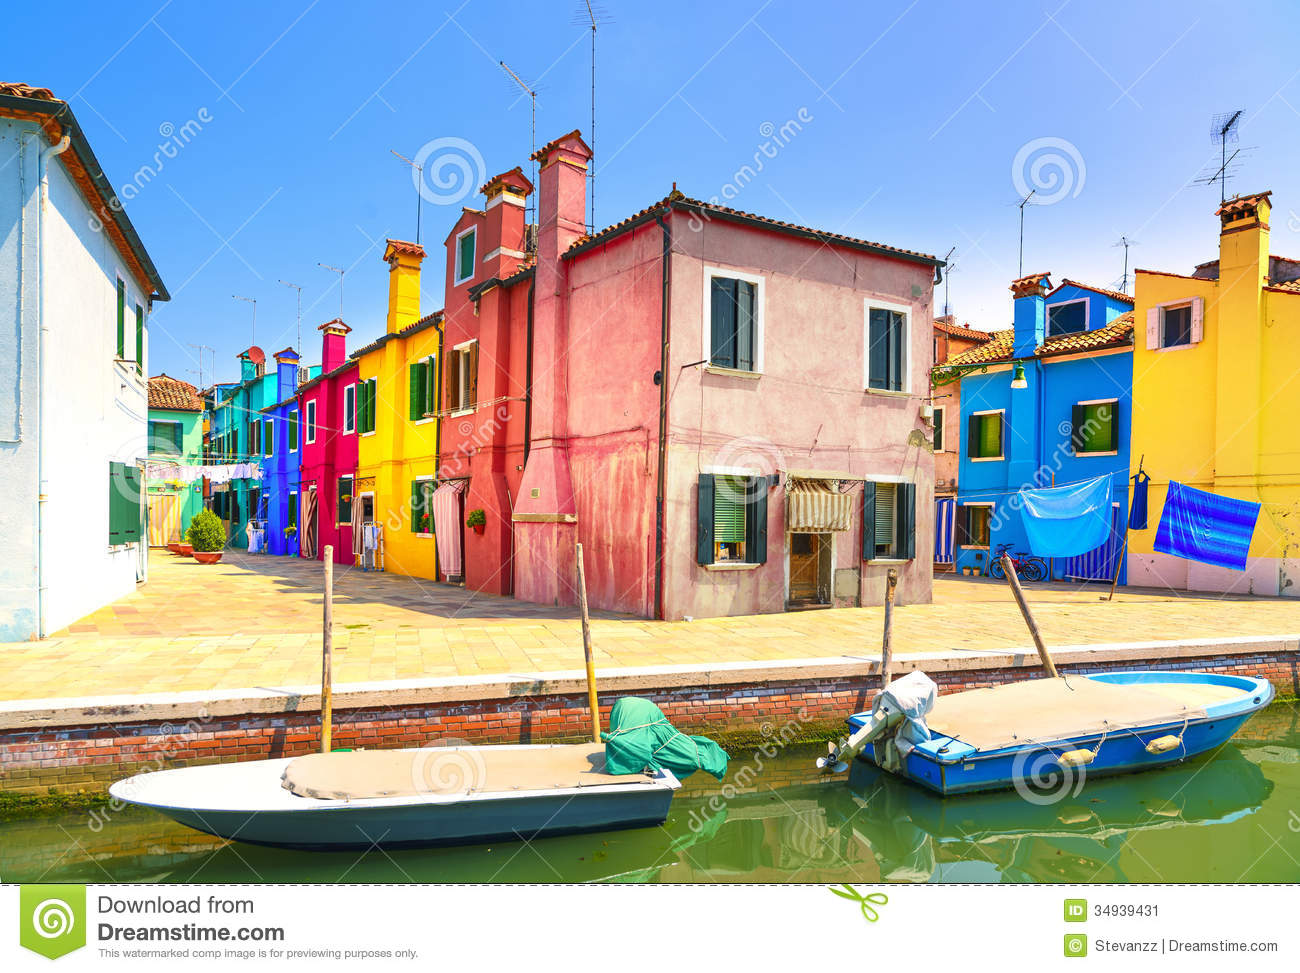 Venice Landmark Burano Island Canal Colorful Houses And